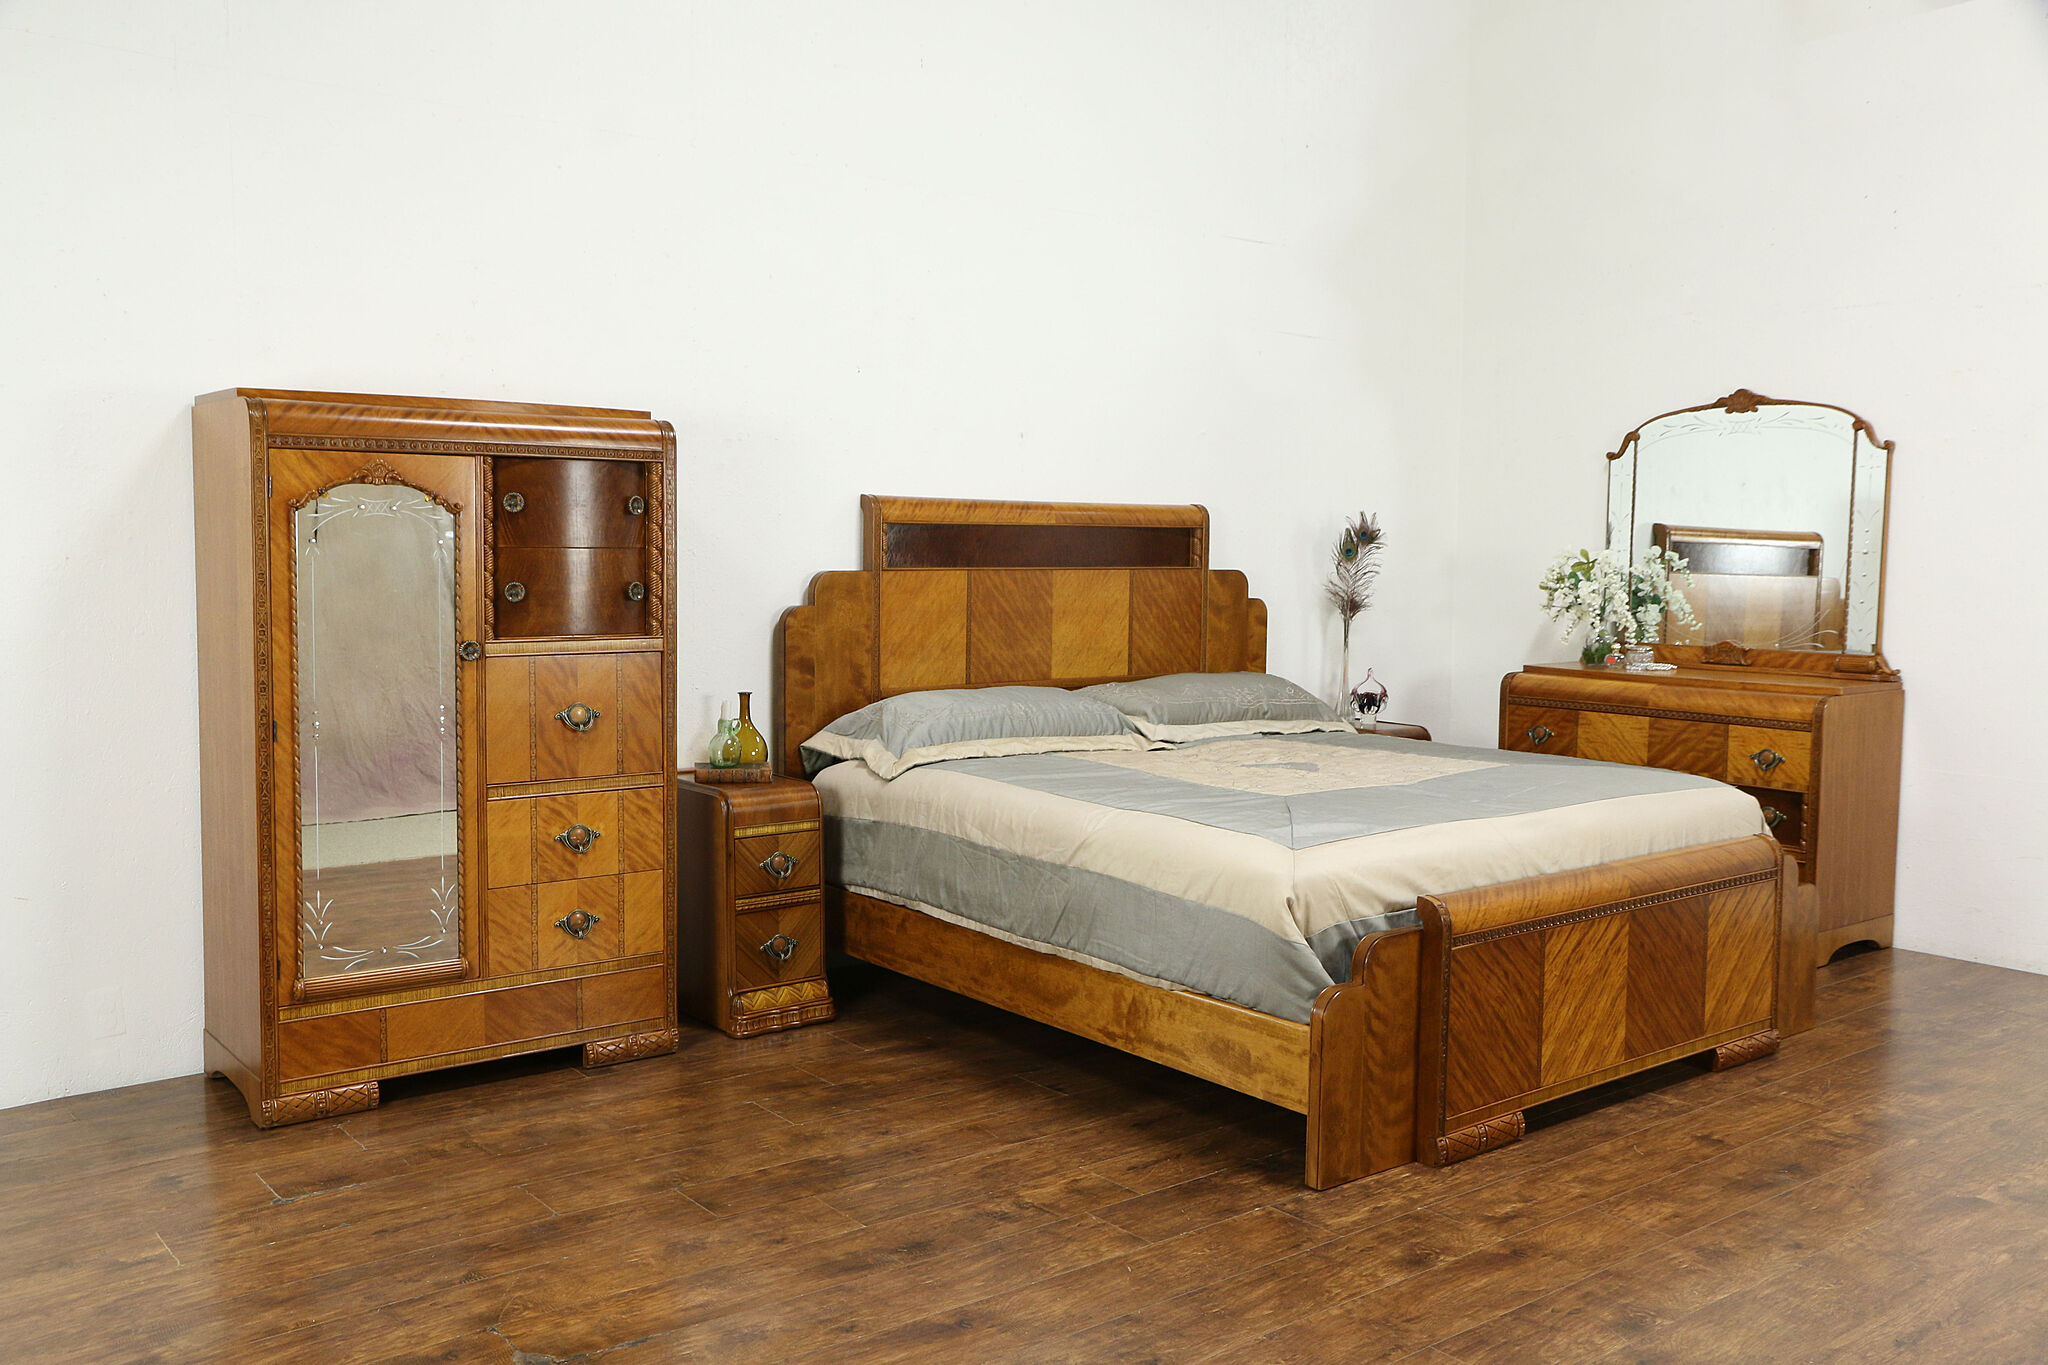 Sold Art Deco Waterfall Design 1930 S Vintage 5 Pc Bedroom Set King Size Bed 34650 Harp Gallery Antiques Furniture